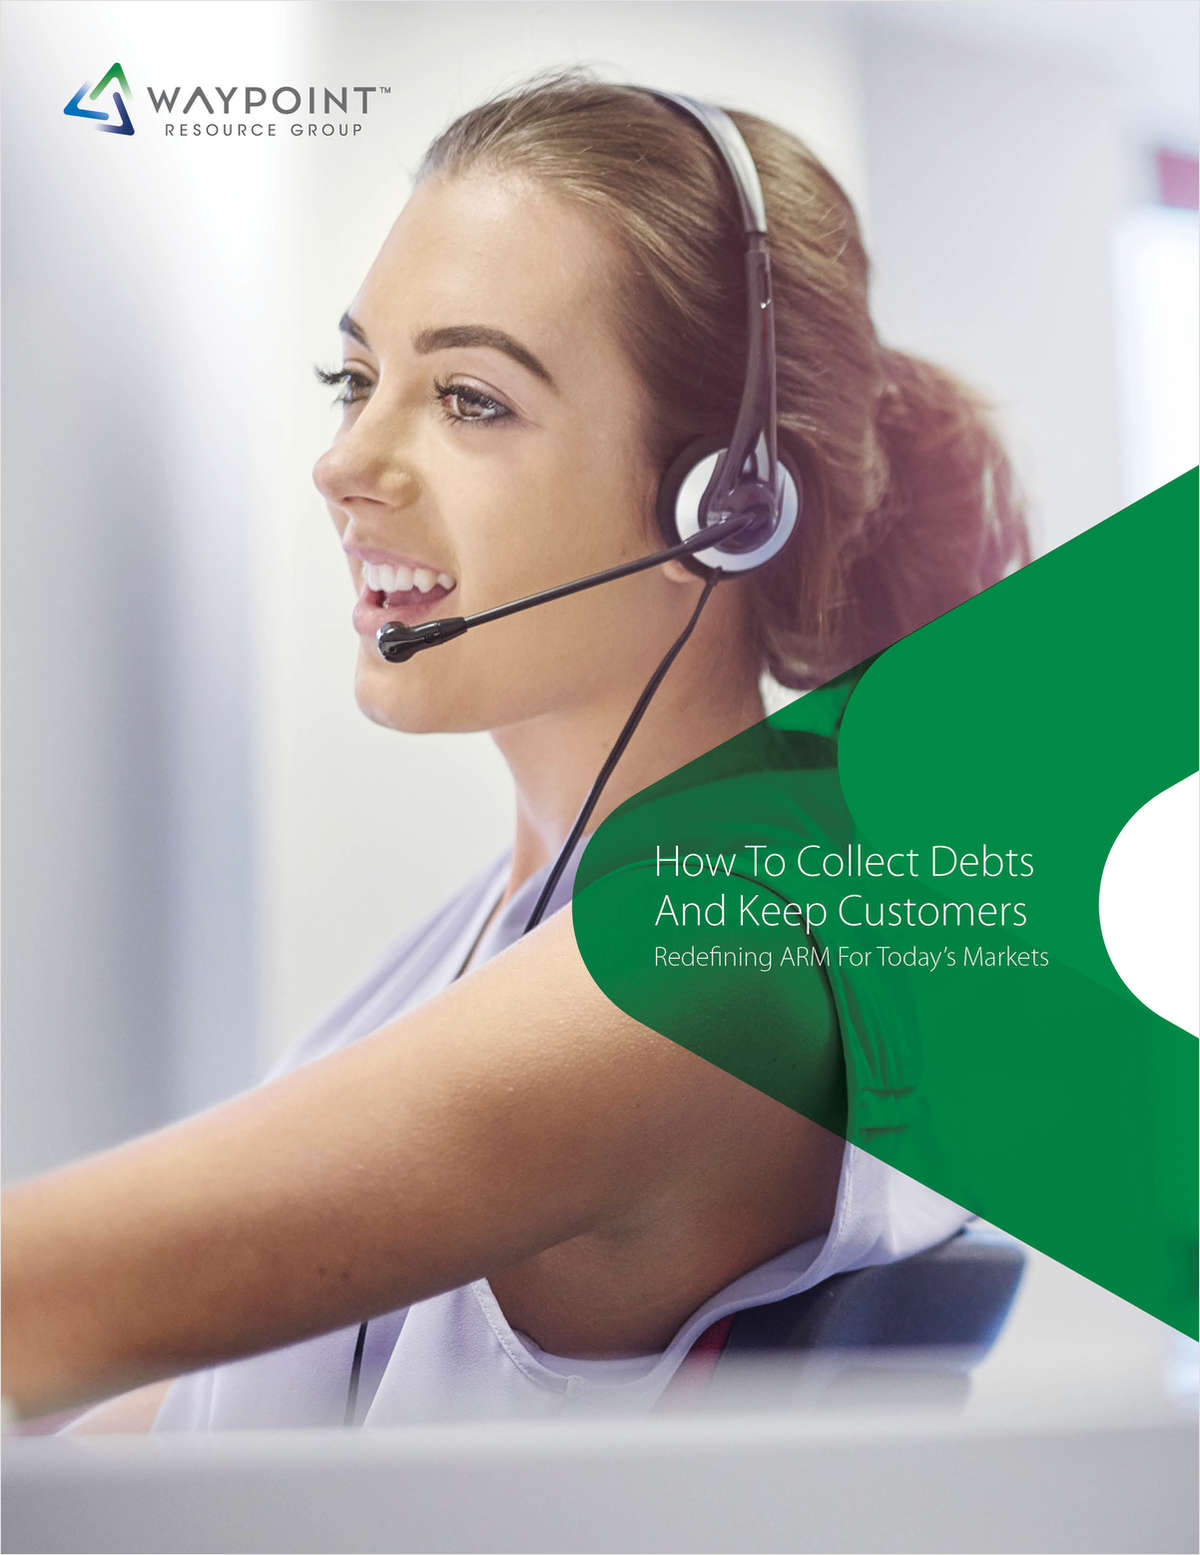 How To Collect Debts And Keep Customers